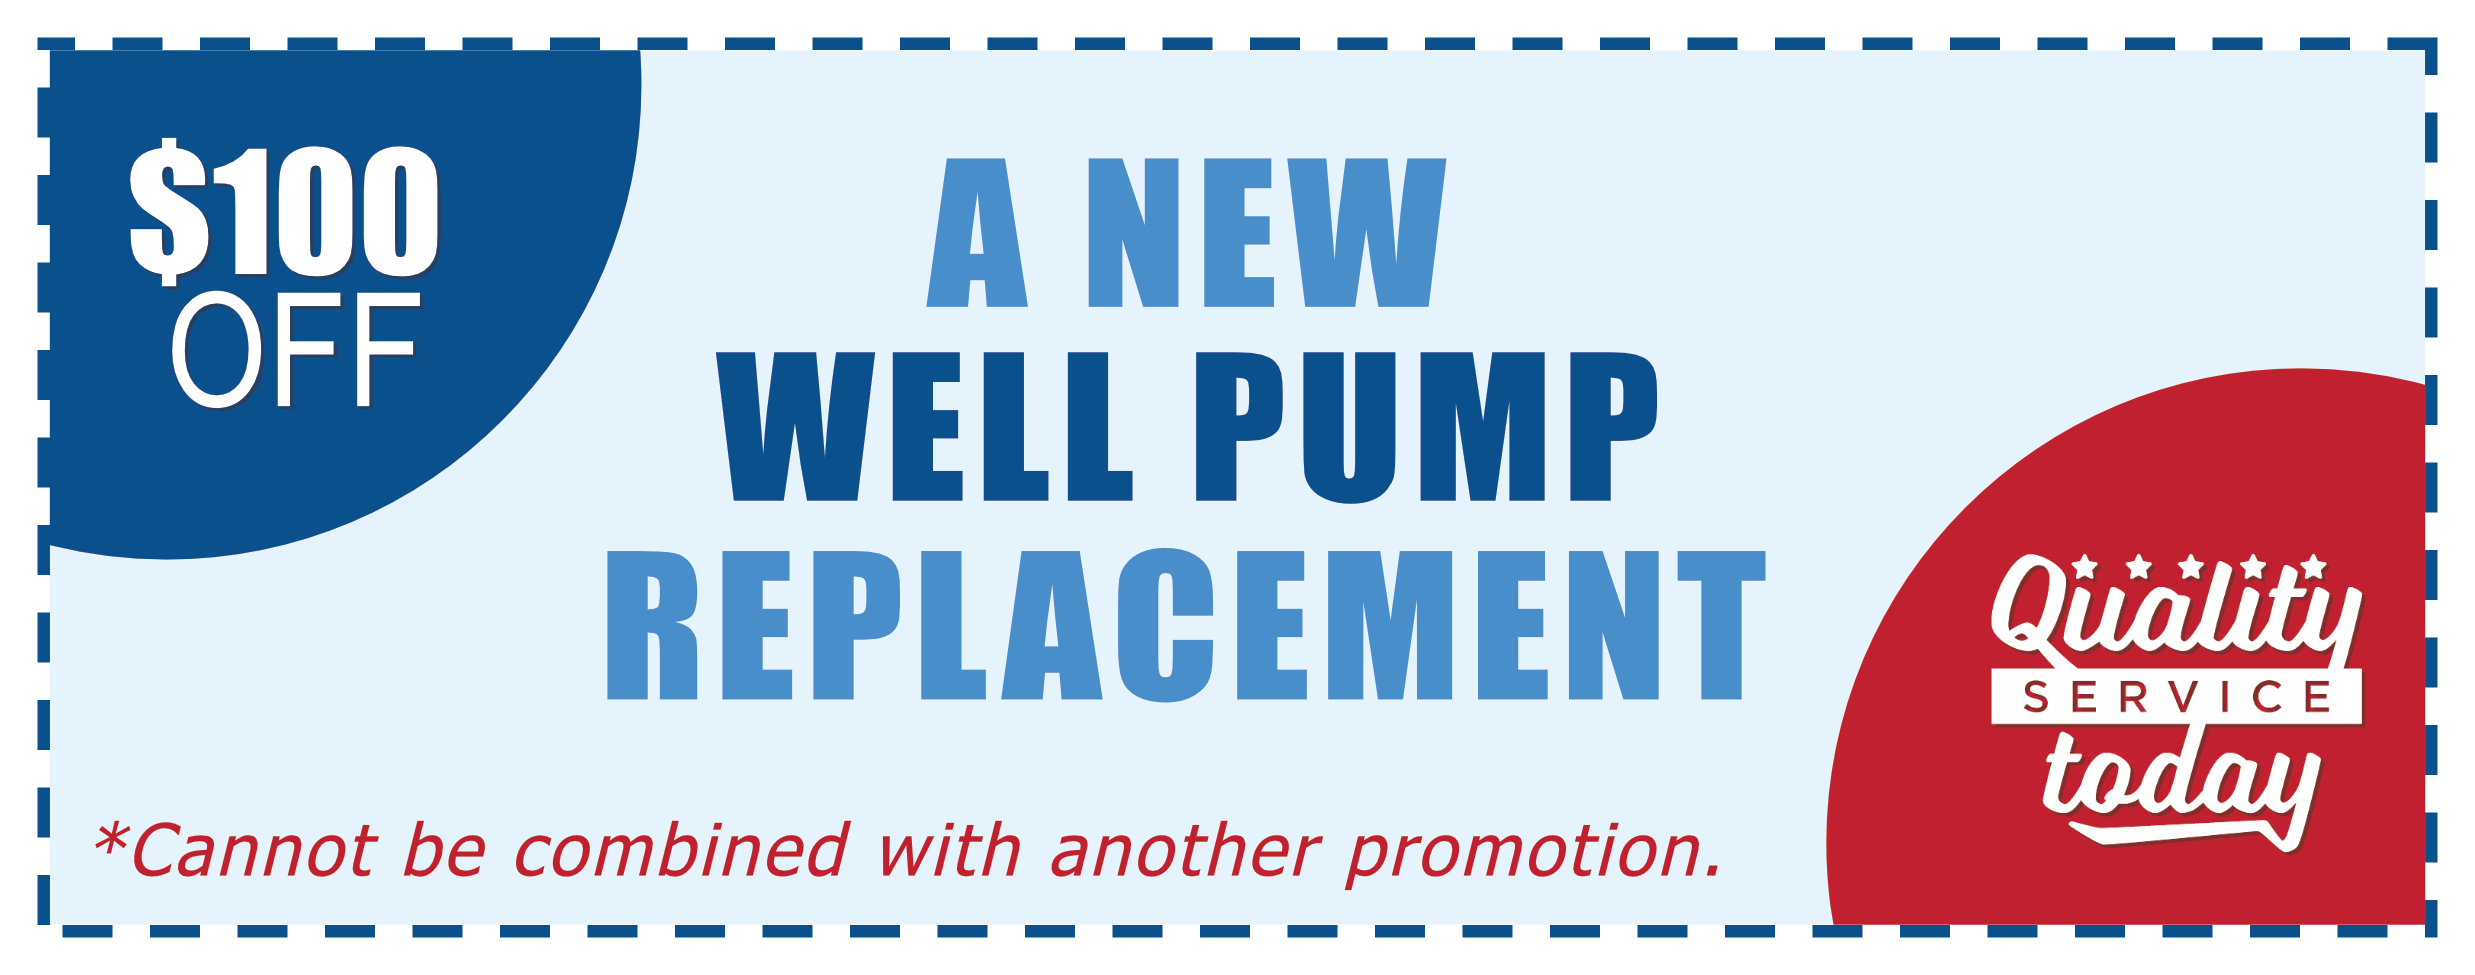 new well pump replacement